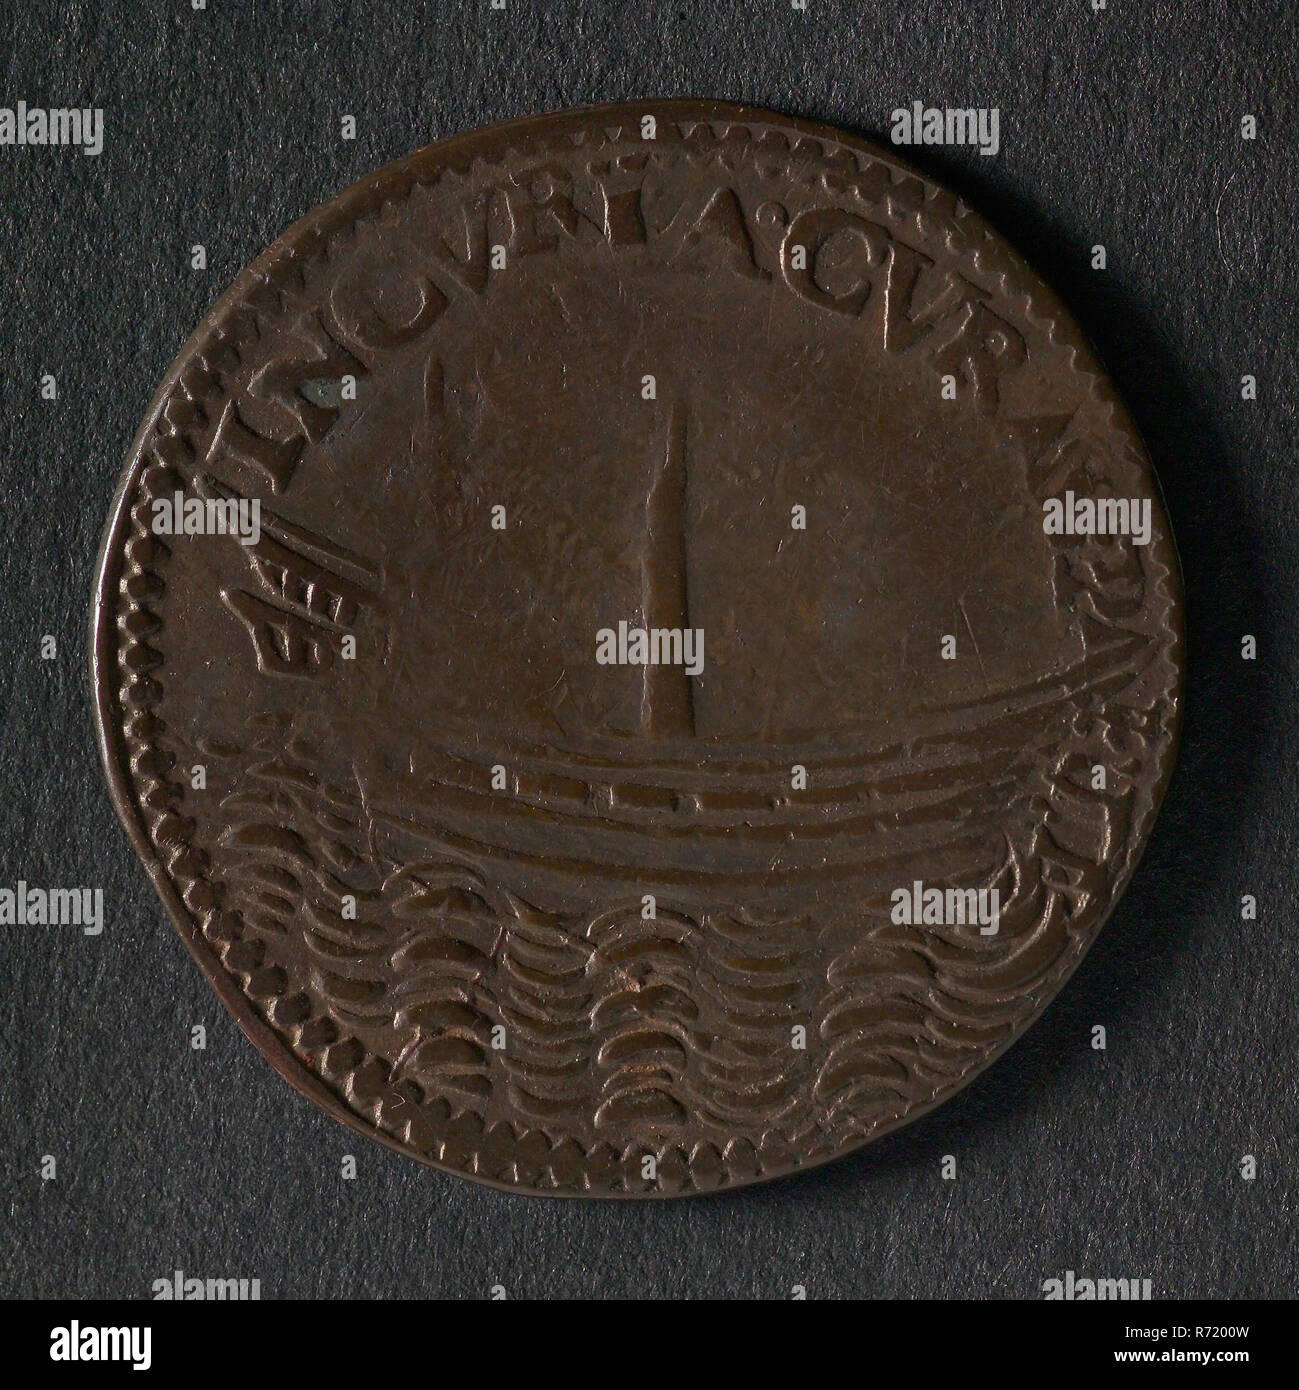 Medal on the war preparations in the Republic, jeton utility medal penny swap copper, ship without mast and rudder legend: INCVRIA CVRAS PARIT (the carelessness worries) Zeeland - Stock Image